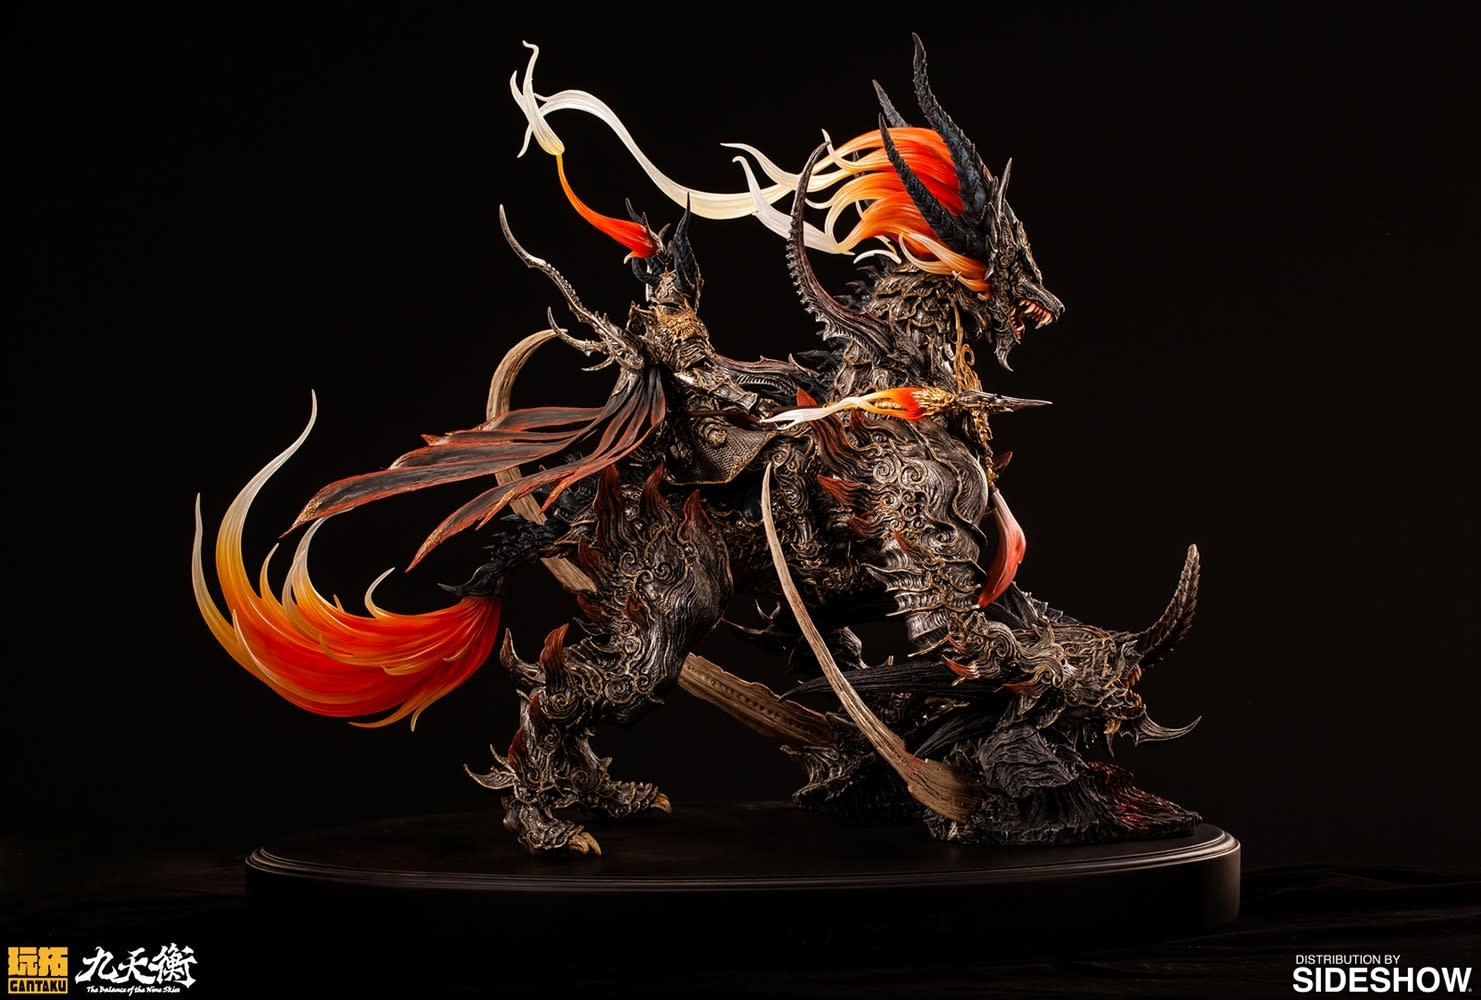 Sideshow The Balance of the Nine Skies: 1:6 Scale Kylin Statue